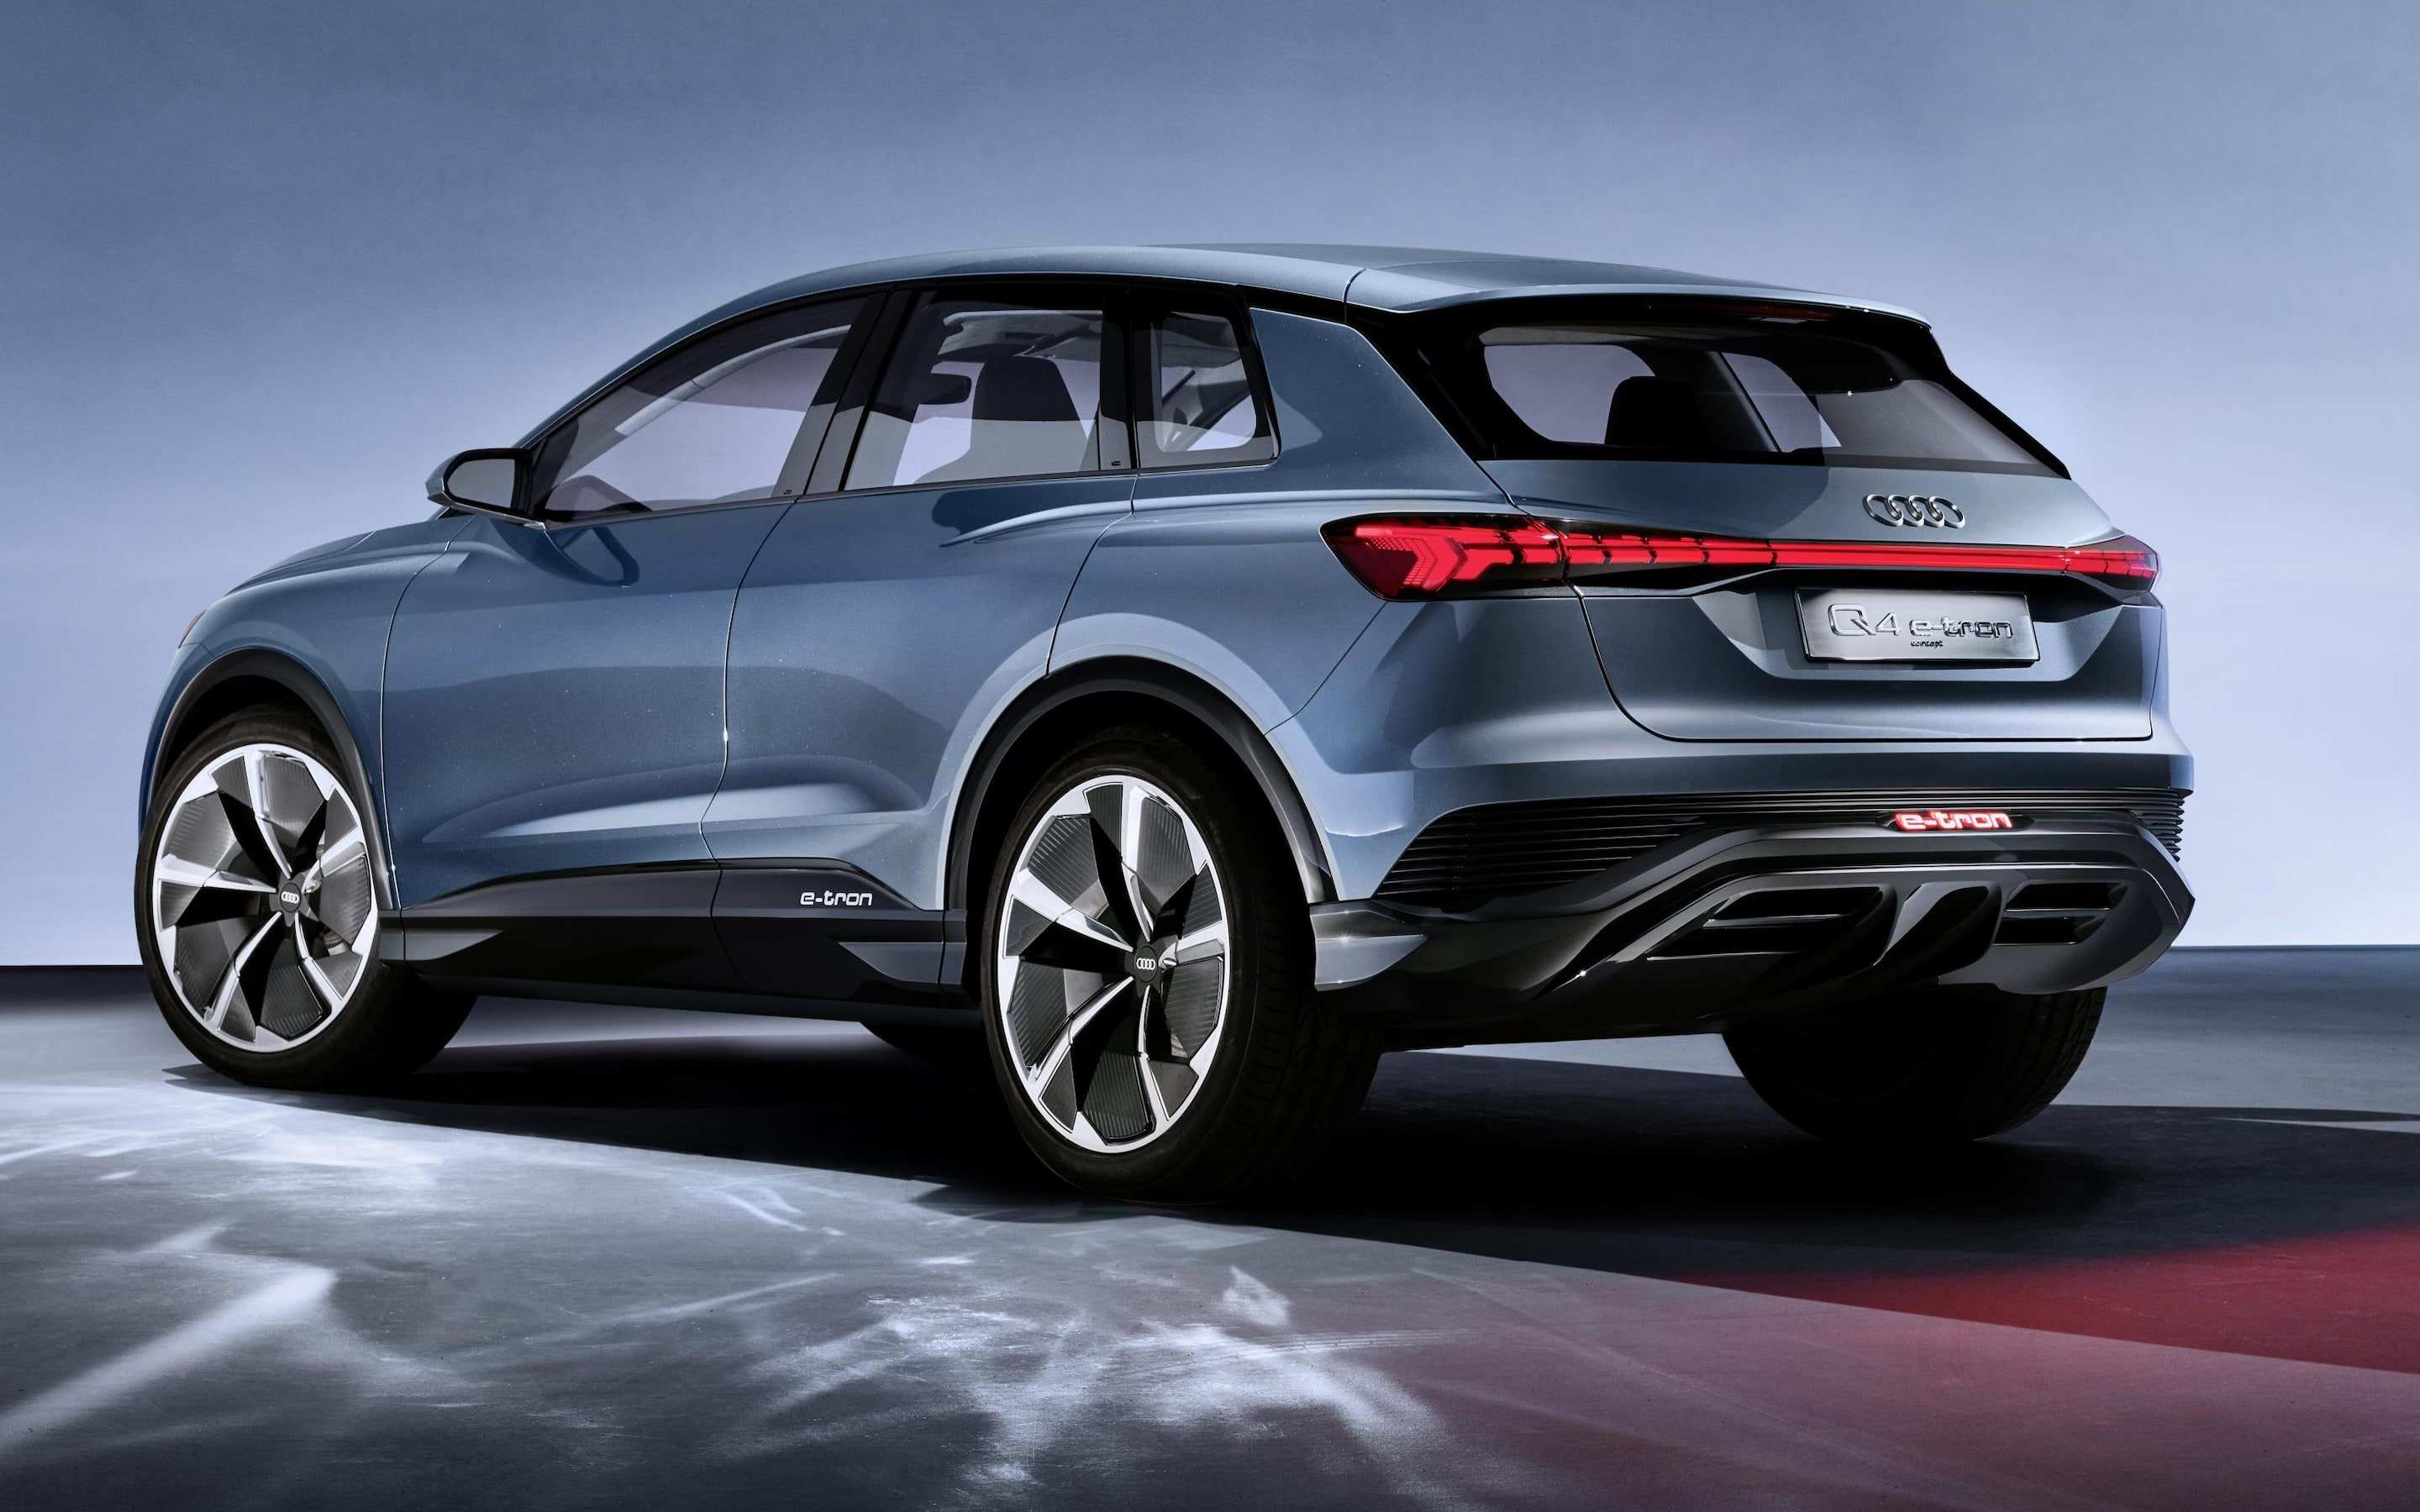 21 Best Review Audi Electric Suv 2020 Concept with Audi Electric Suv 2020